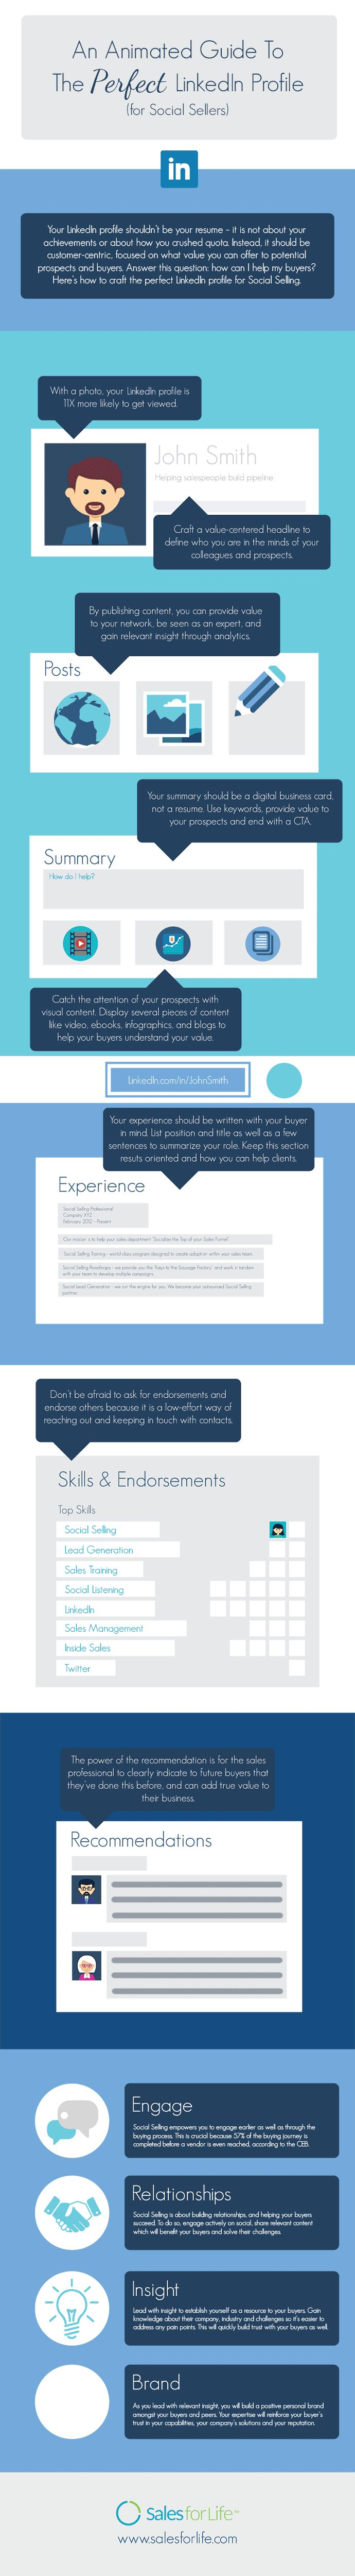 How Should #Social #Seller #Profile Look Like in #Linkedin? [ #INFOGRAPHIC ] - #TopNetSEO